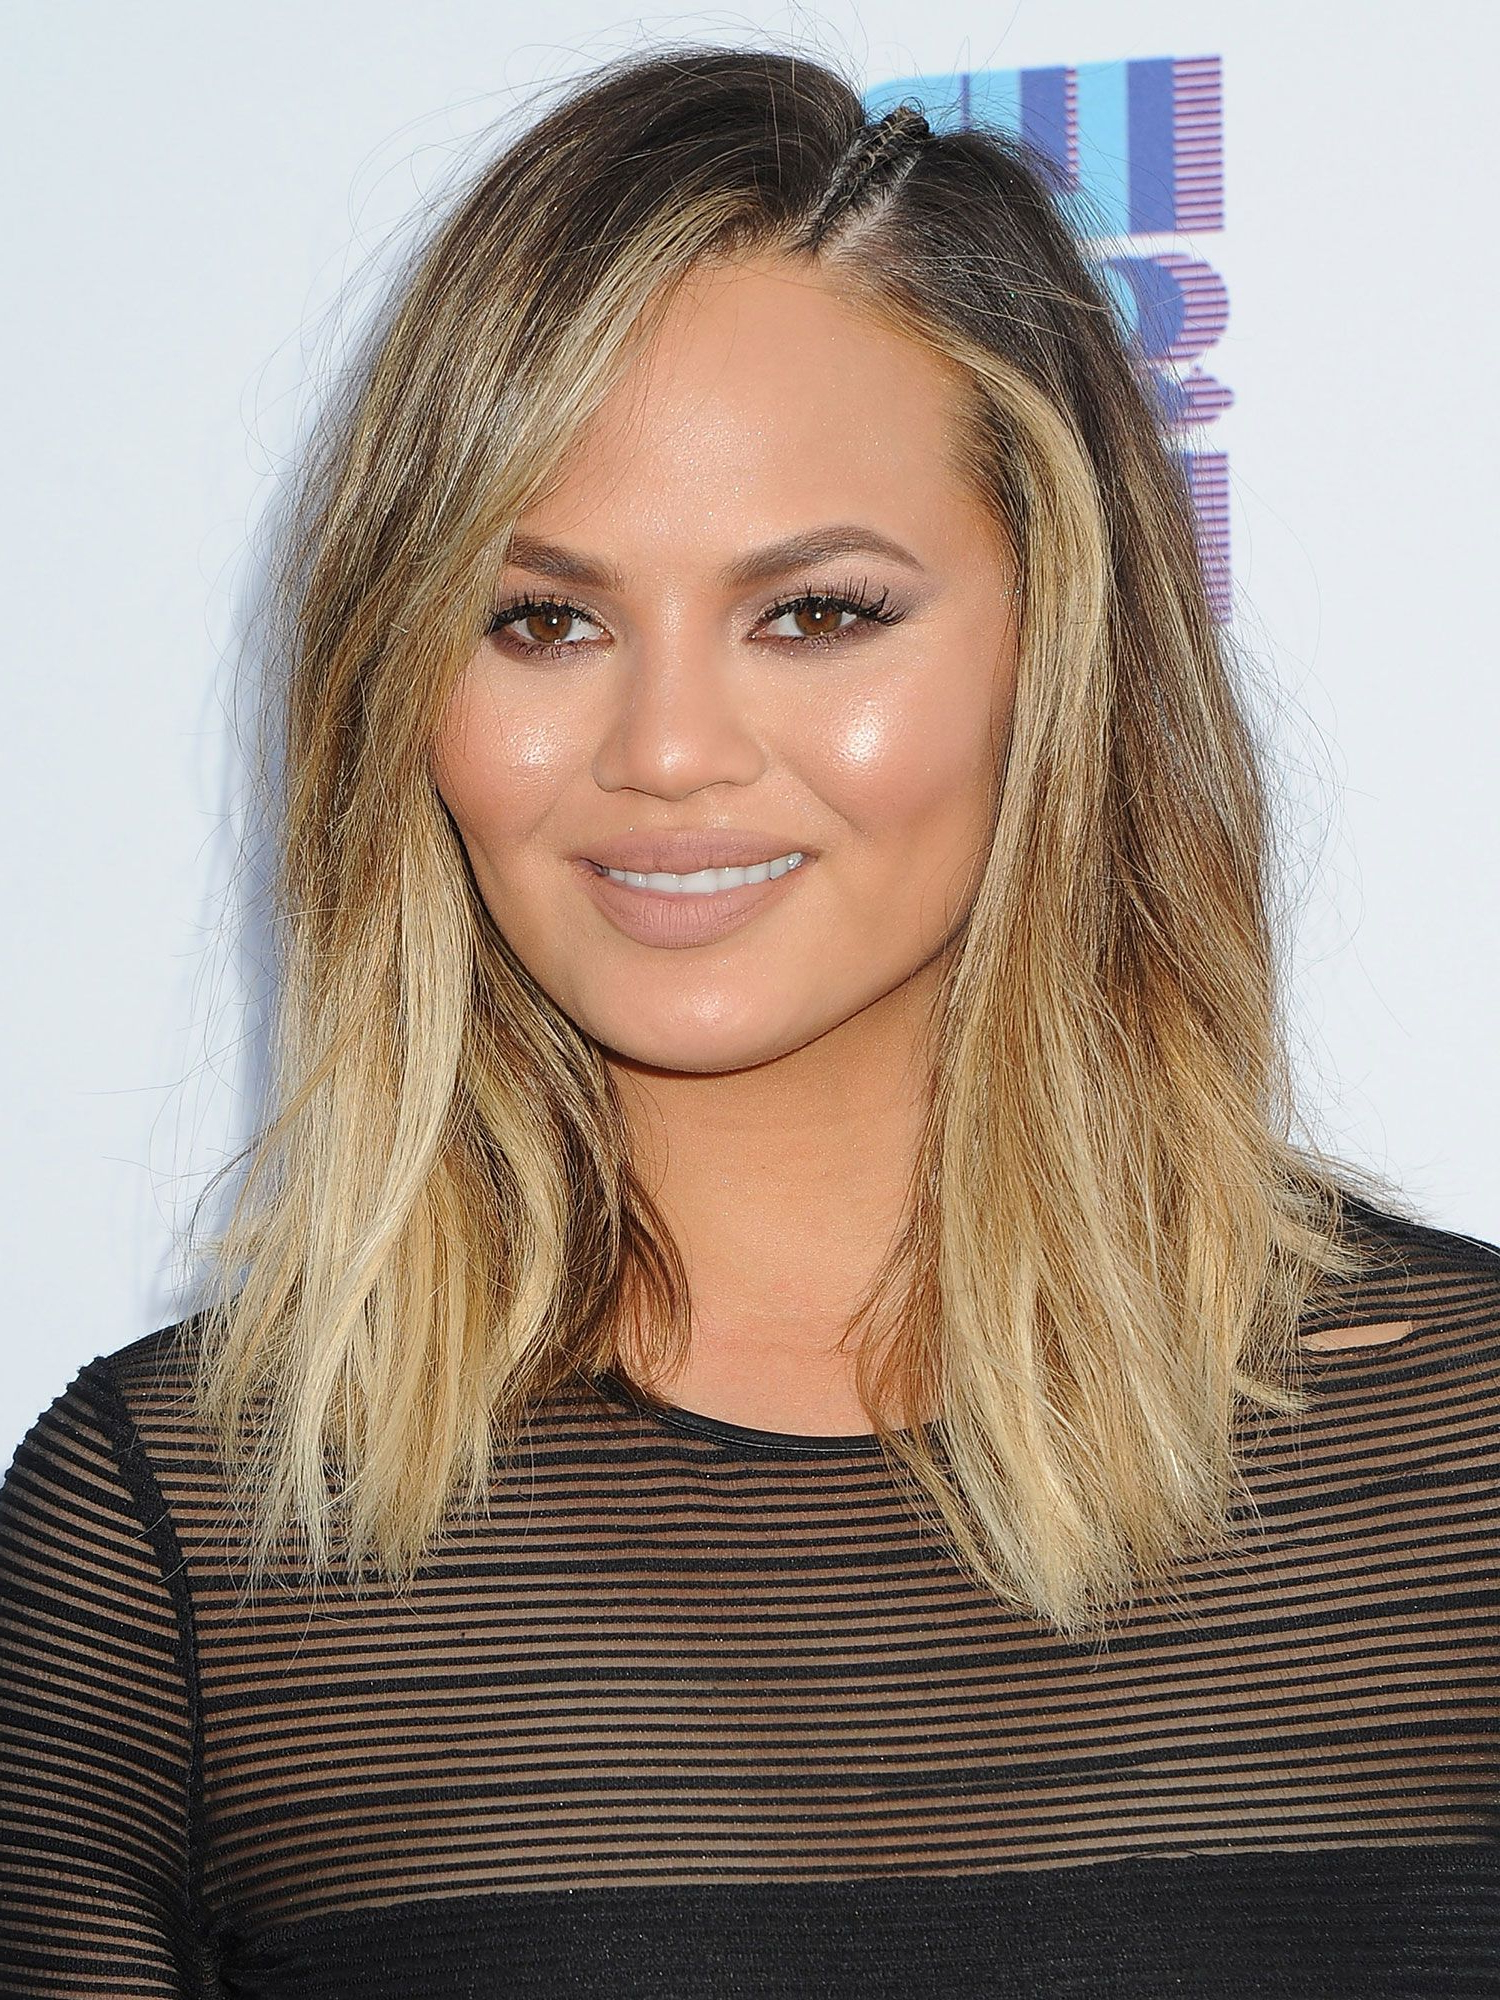 Best Hairstyles For Oval Faces – 10 Flattering Haircuts For Long Inside Short Haircuts For Oval Faces (View 17 of 25)